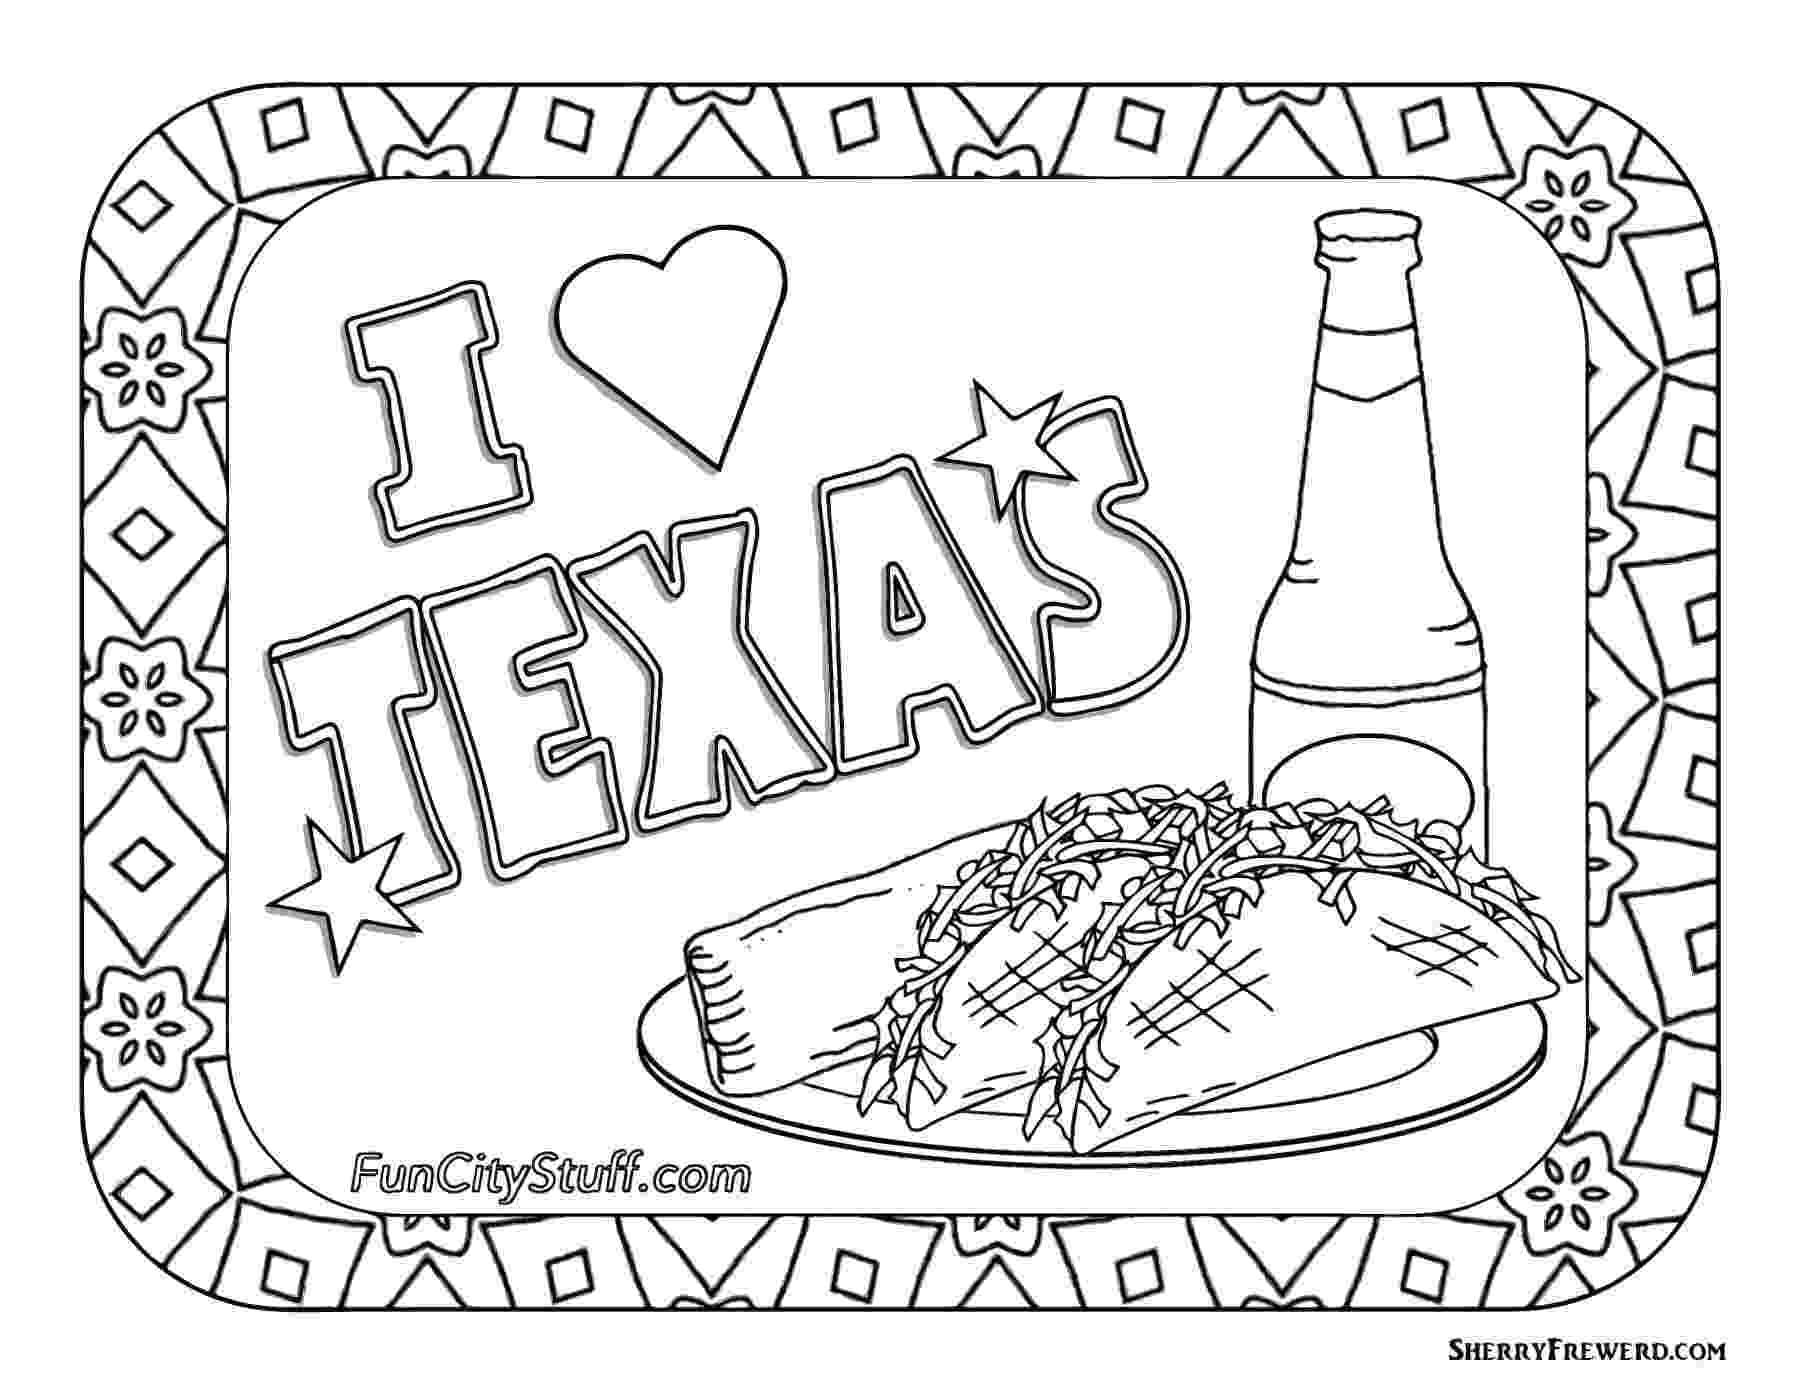 texas coloring page color your cares away texas style funcity stuff dfw texas coloring page